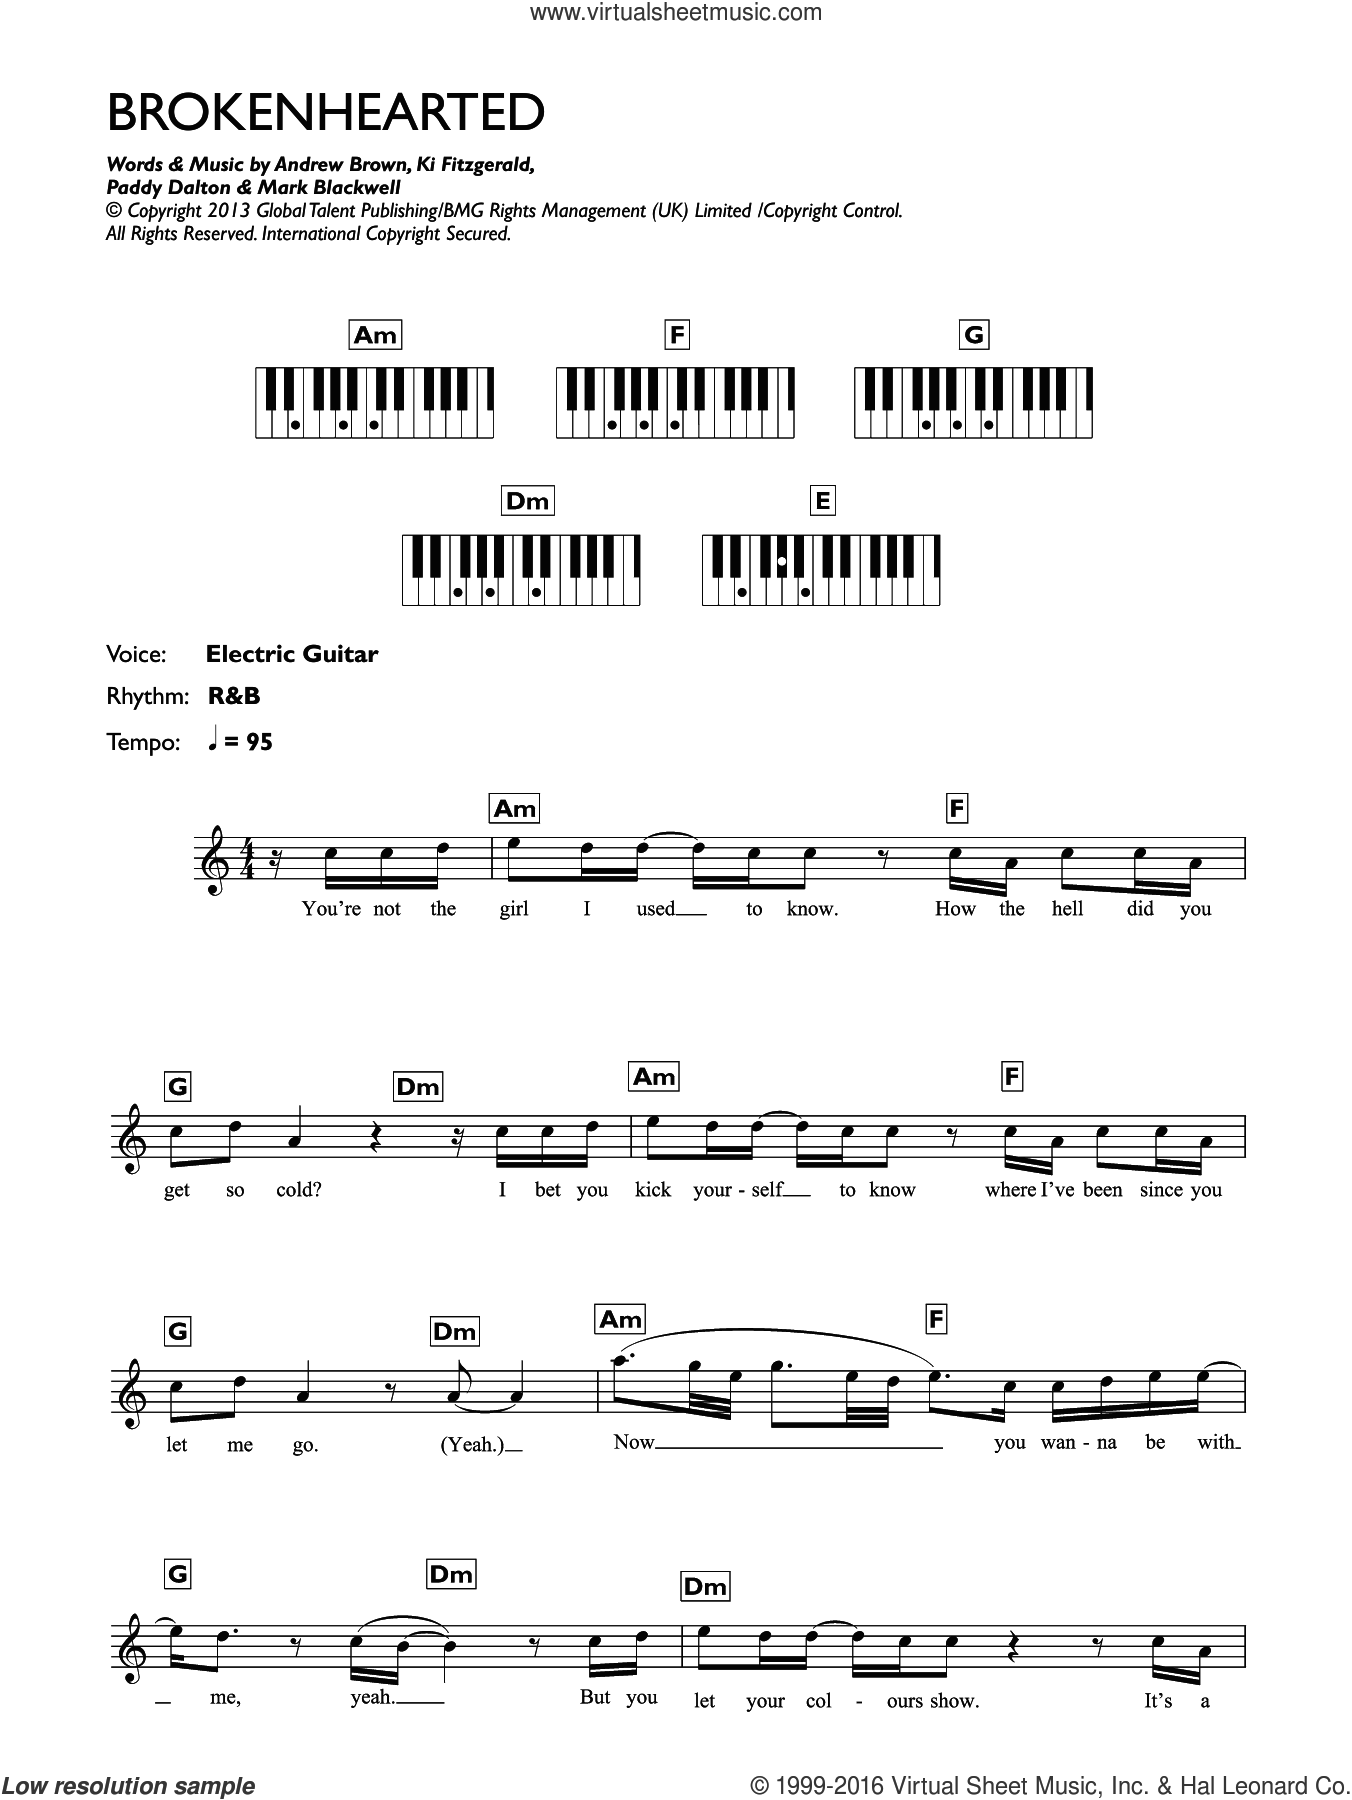 Brokenhearted (featuring B.o.B) sheet music for piano solo (chords, lyrics, melody) by LAWSON, B.o.B., Andrew Brown, Bobby Ray Simmons Jr., Ki Fitzgerald, Mark Blackwell and Paddy Dalton, intermediate piano (chords, lyrics, melody)